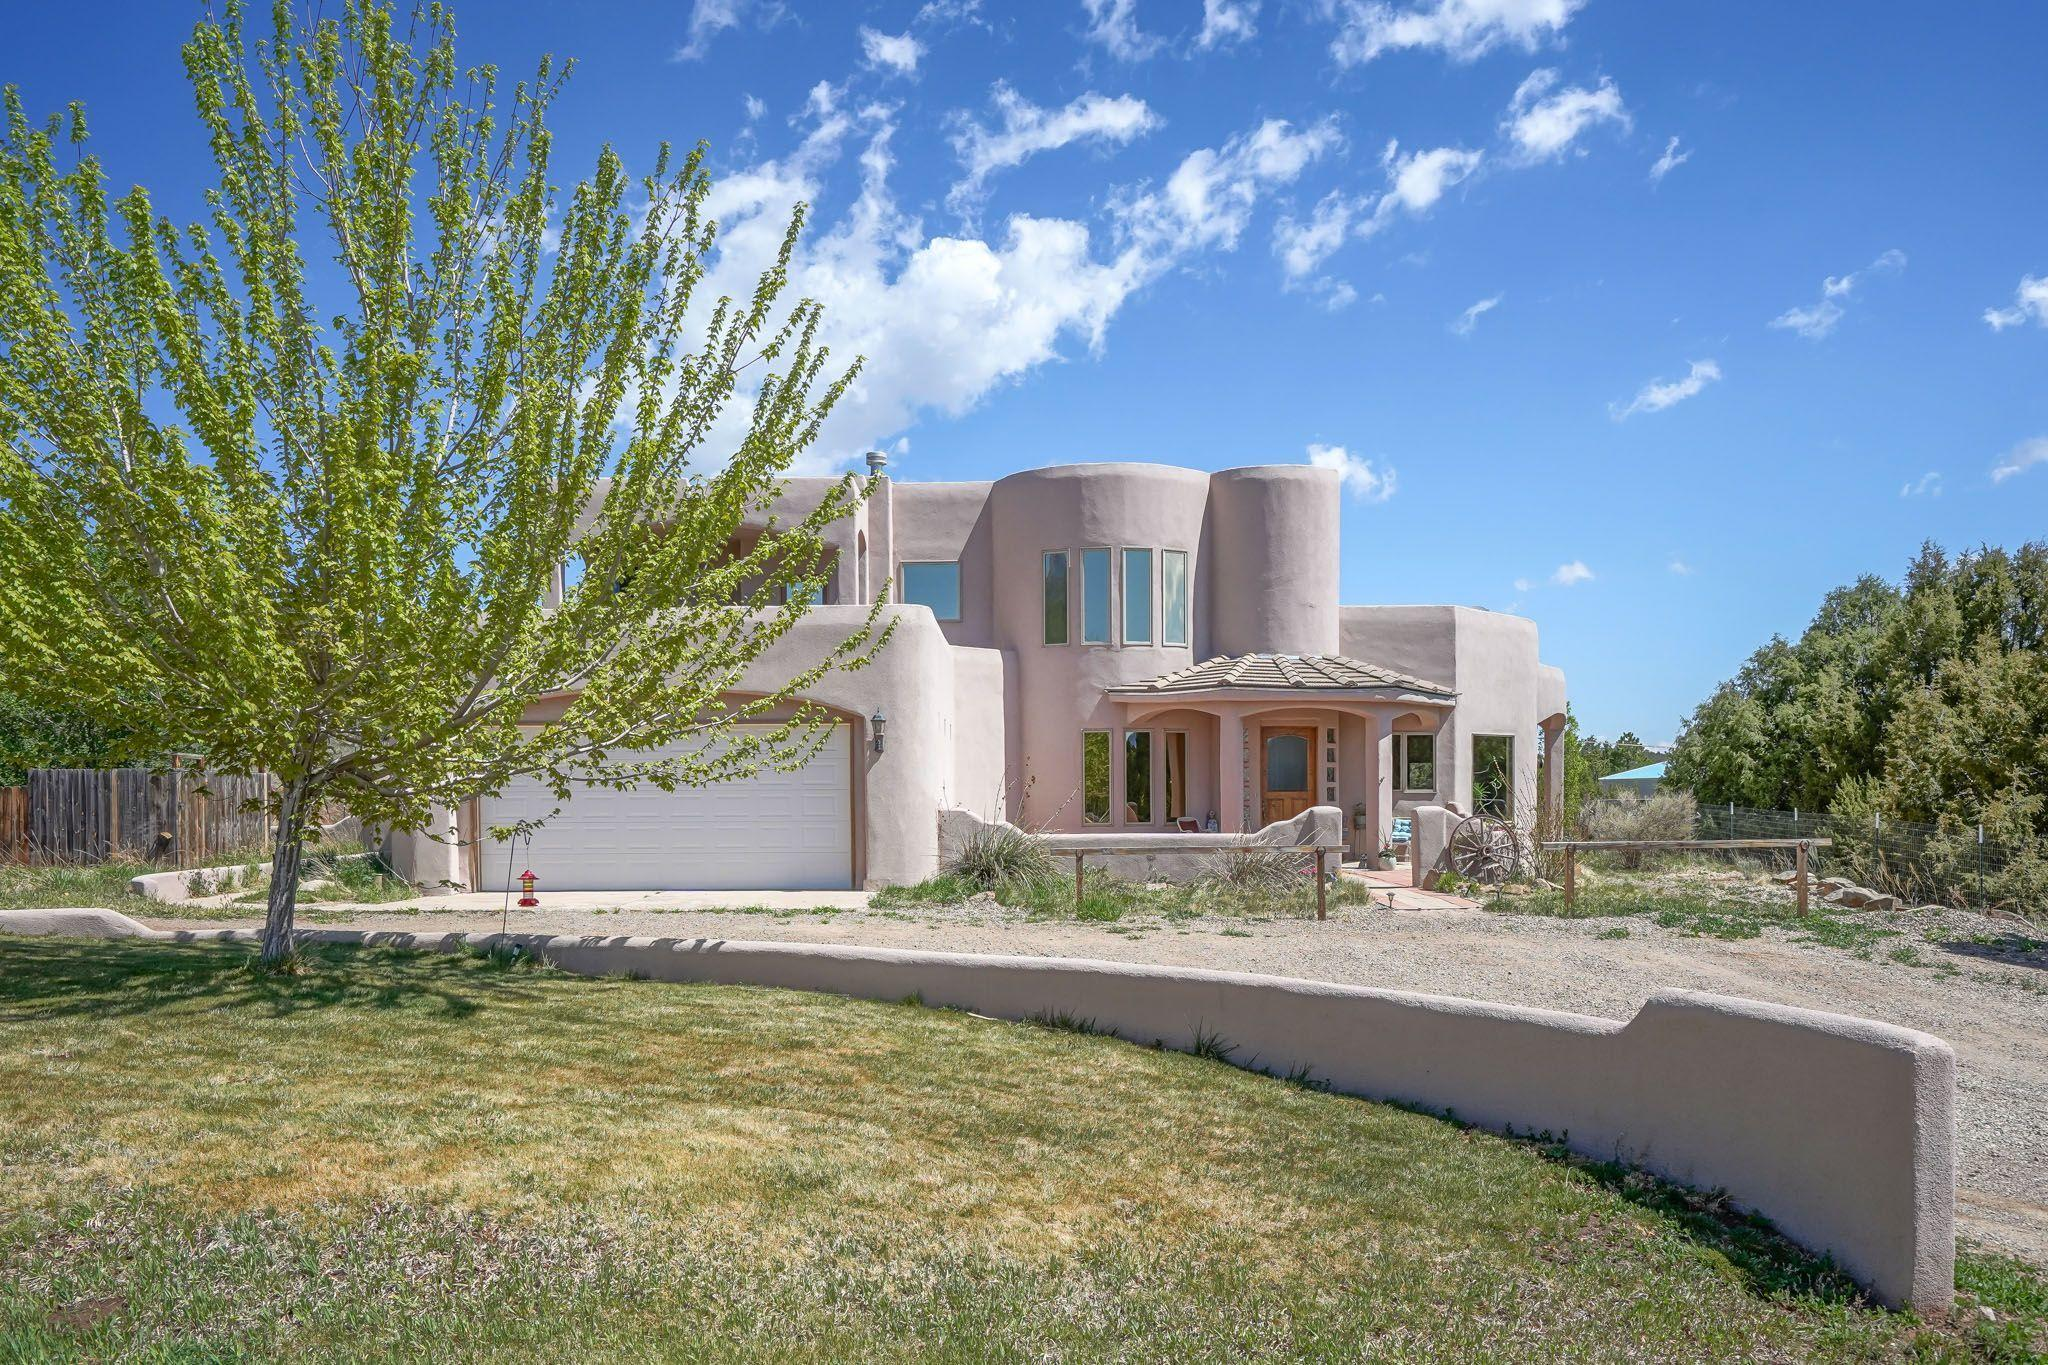 Wonderful Ron Montoya designed home, located in Cedar Crest just 10 minutes outside Albuquerque. Here you will enjoy a serene quiet environment with all the ameneties of a beautiful custom home. Large living area . Two master suites one up, and one down, if working from home the 4th bedroom downstairs can serve as an office. Large kitchen with stainless steel appliances, granite counter tops and kitchen nook with access to a side patio where you can enjoy your morning coffee. All  windows throughout manufactured by Pella. This home sits on 1.3 acres, completely fenced with a backyard area fenced for your favorite pets. Two car garage with plenty of space on the property for your  RV parking.